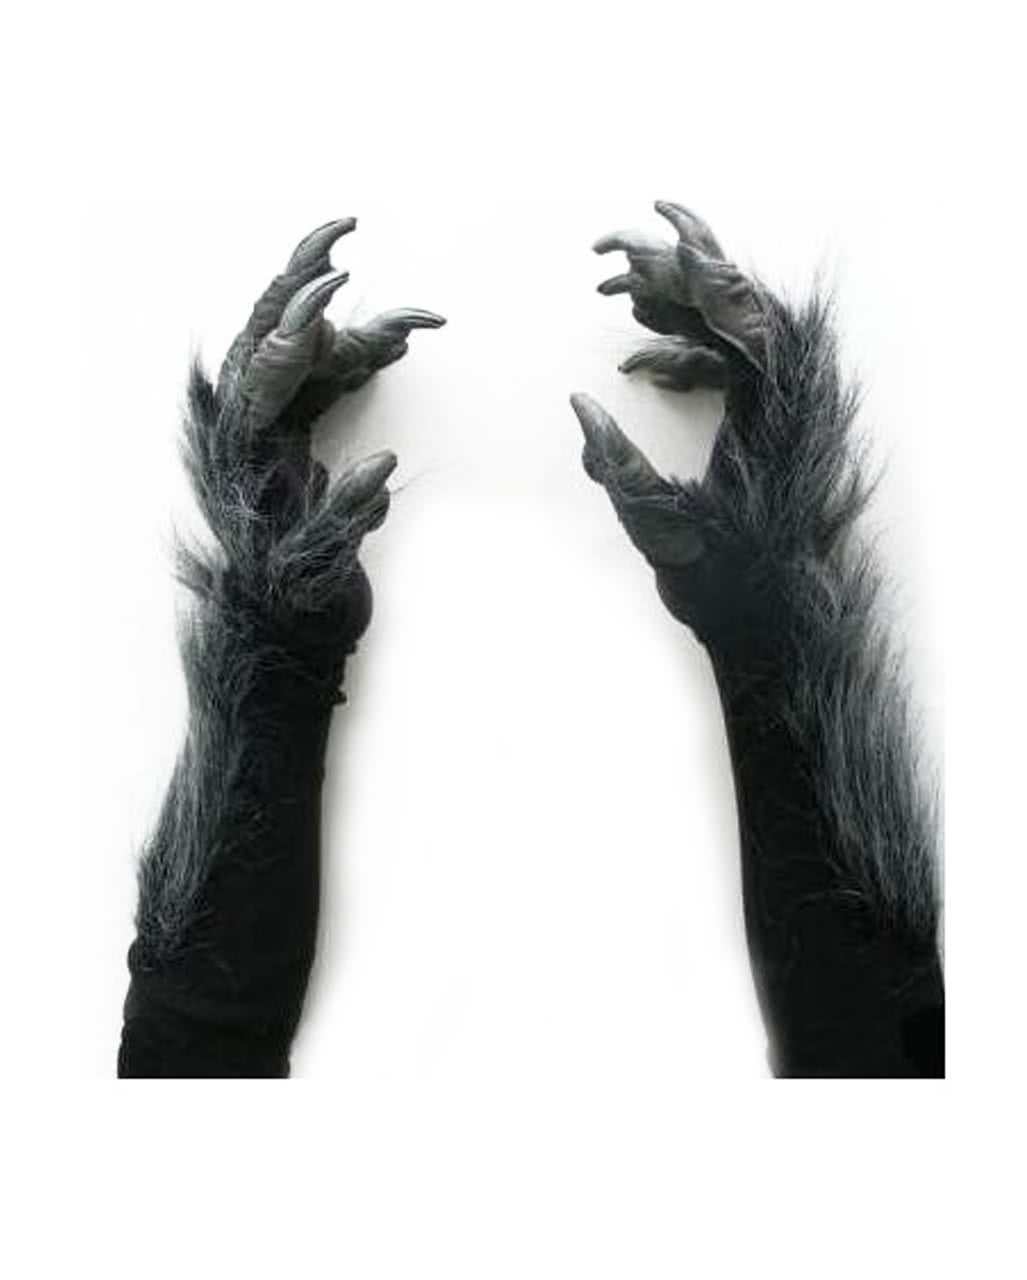 sc 1 st  Horror-Shop.com & Werewolf Gloves Deluxe Black Costume Accessories | horror-shop.com